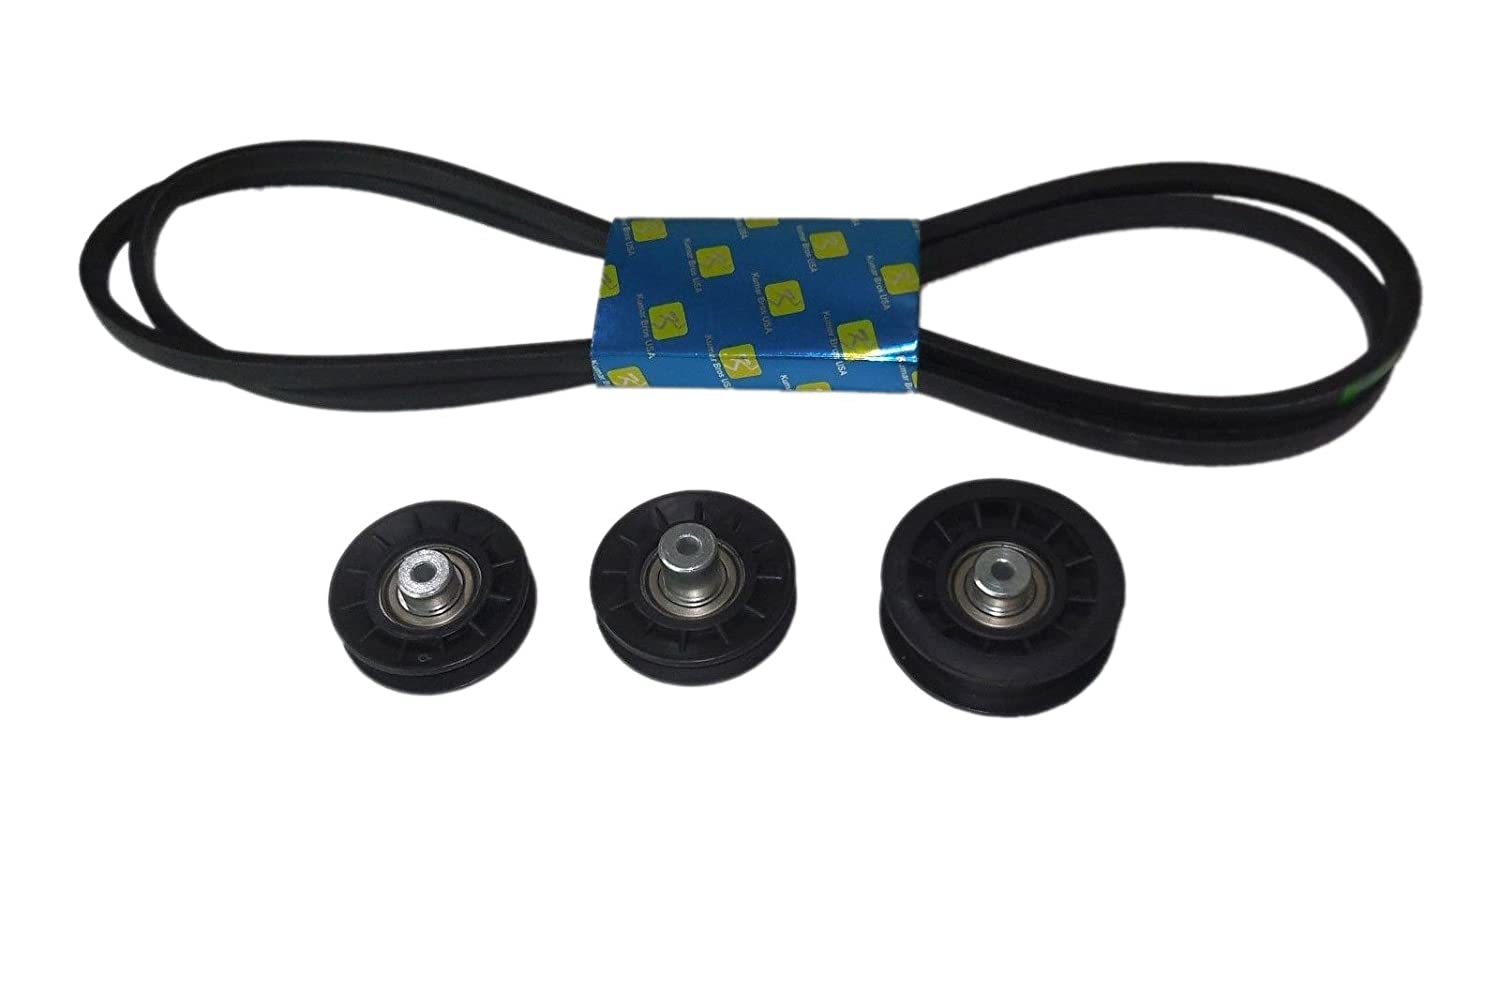 New John Deere Lt150 Lt160 Lt170 Idler Pulley Kit W Wiring Harness Hydrotransmission Drive Belt Garden Outdoor